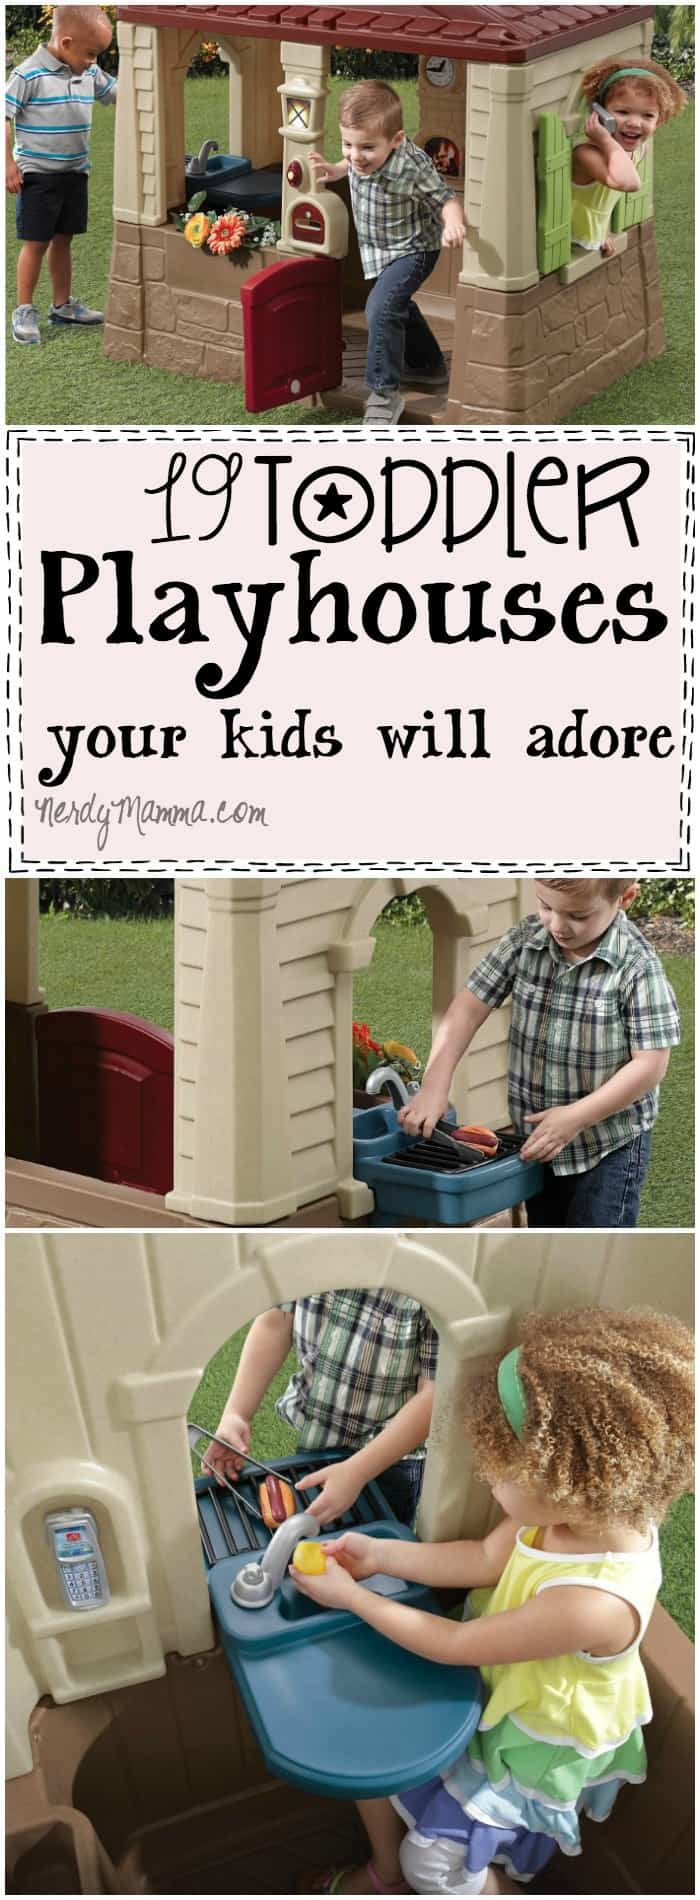 These 19 Toddler Playhouses are so cute! I want them all, but I guess my kids just need one...maybe that Pirate Ship...